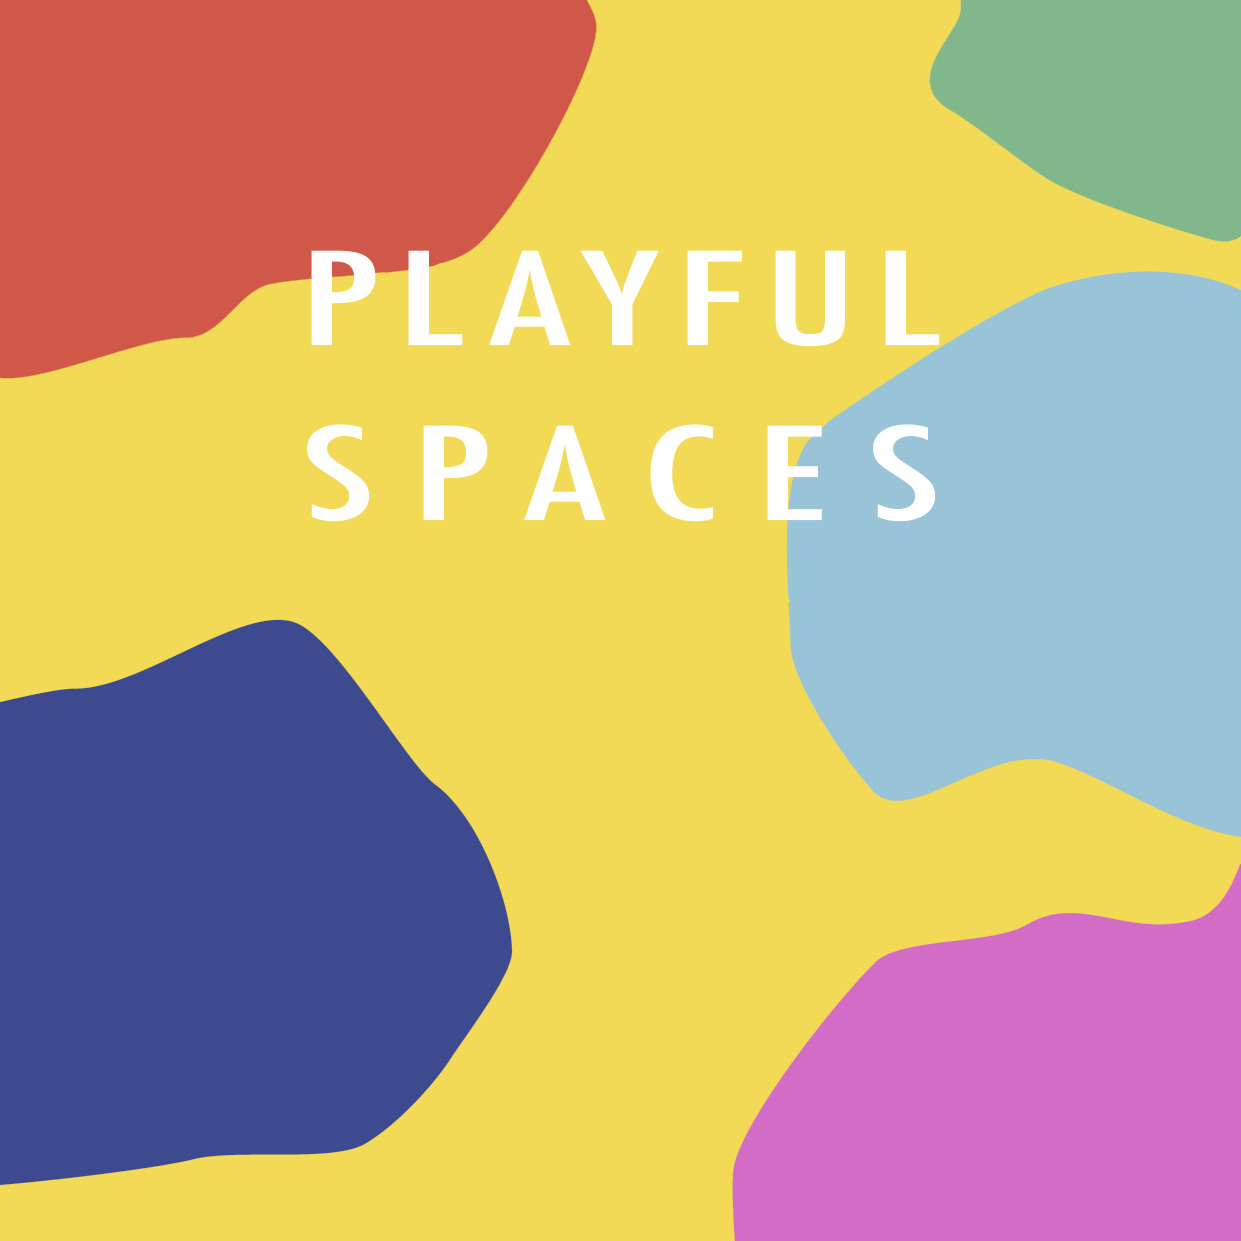 tues_20th_thur_22nd_1pm2pm_brlunchtime_talk_series_playful_spaces_br